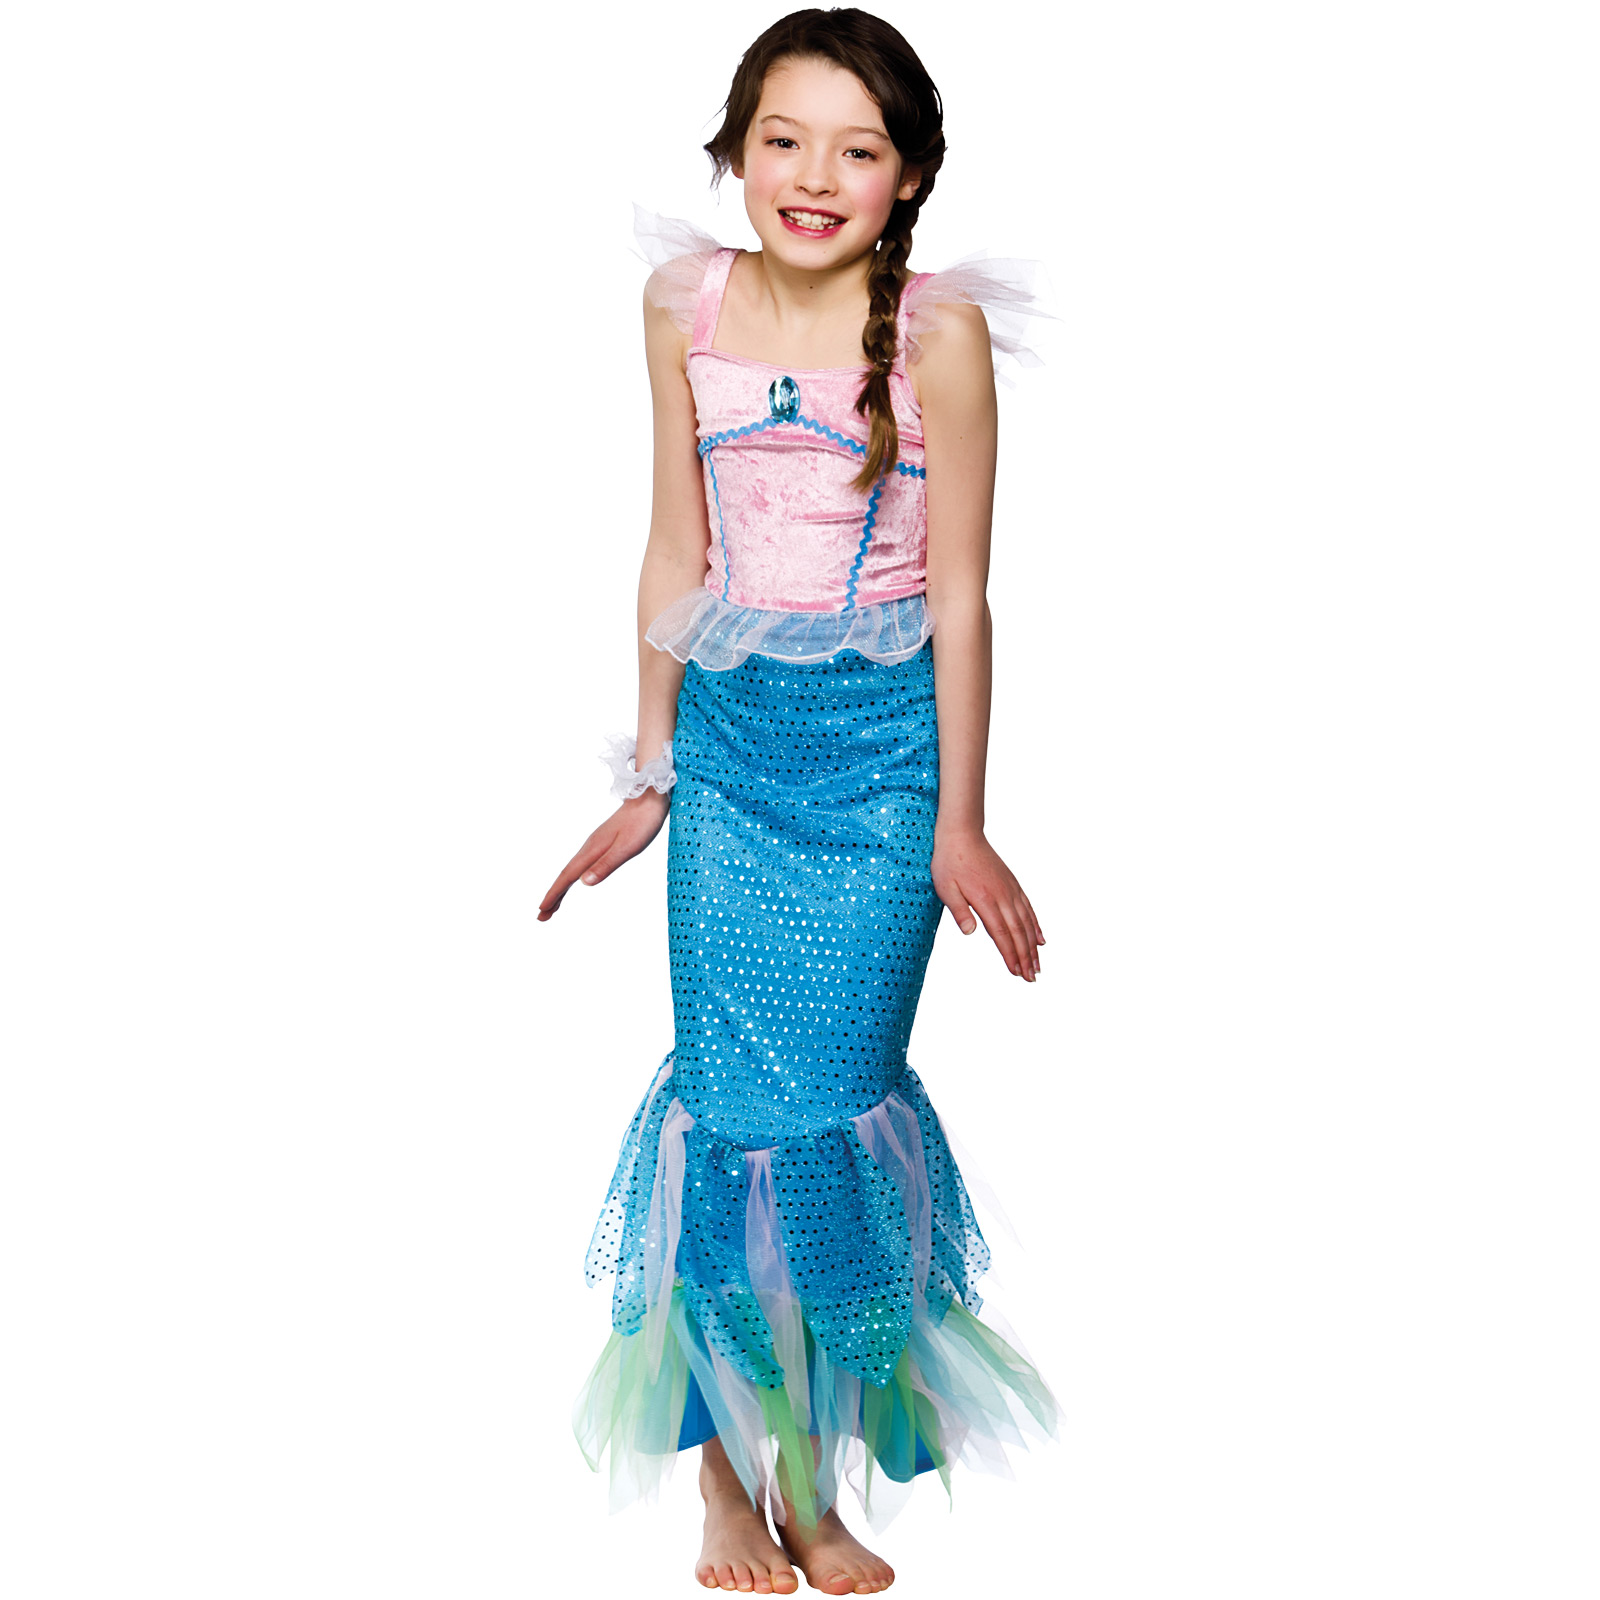 Child-Girls-Mystical-Mermaid-Costume-Fancy-Dress-Up-Role-Play-Party-Halloween